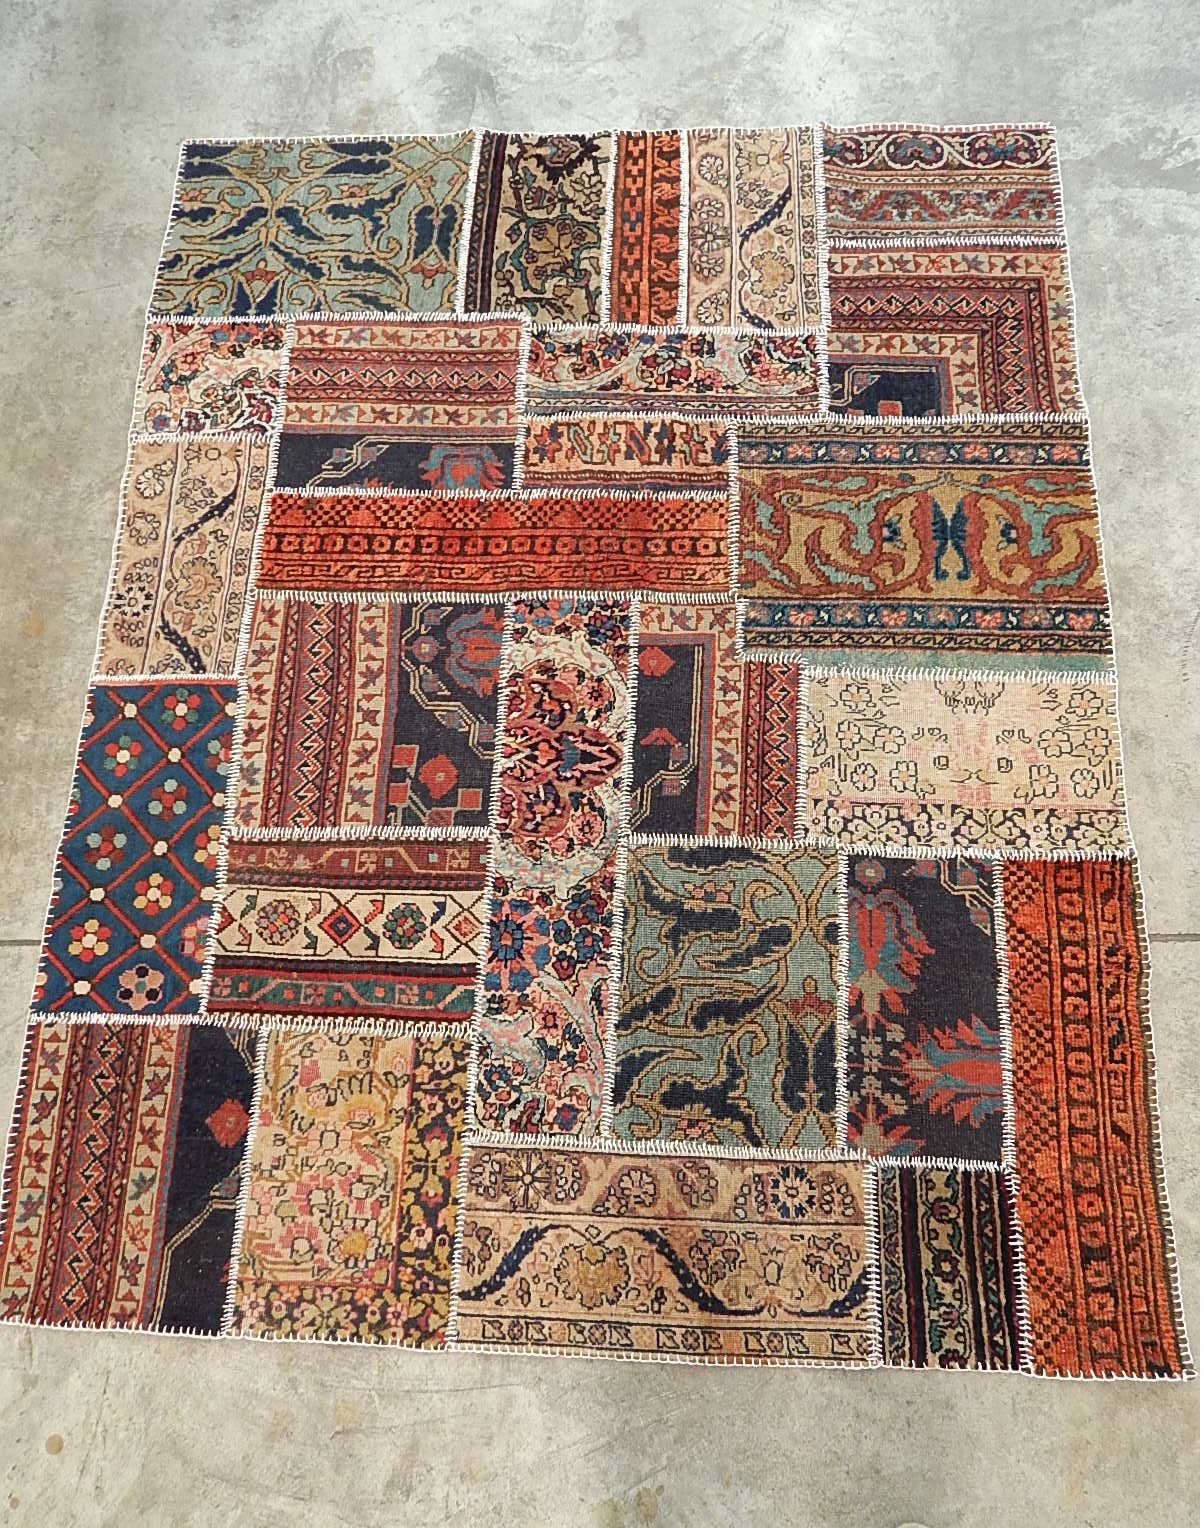 Sir xristian antiques patchwork de alfombras hechas a mano - Alfombras de patchwork ...